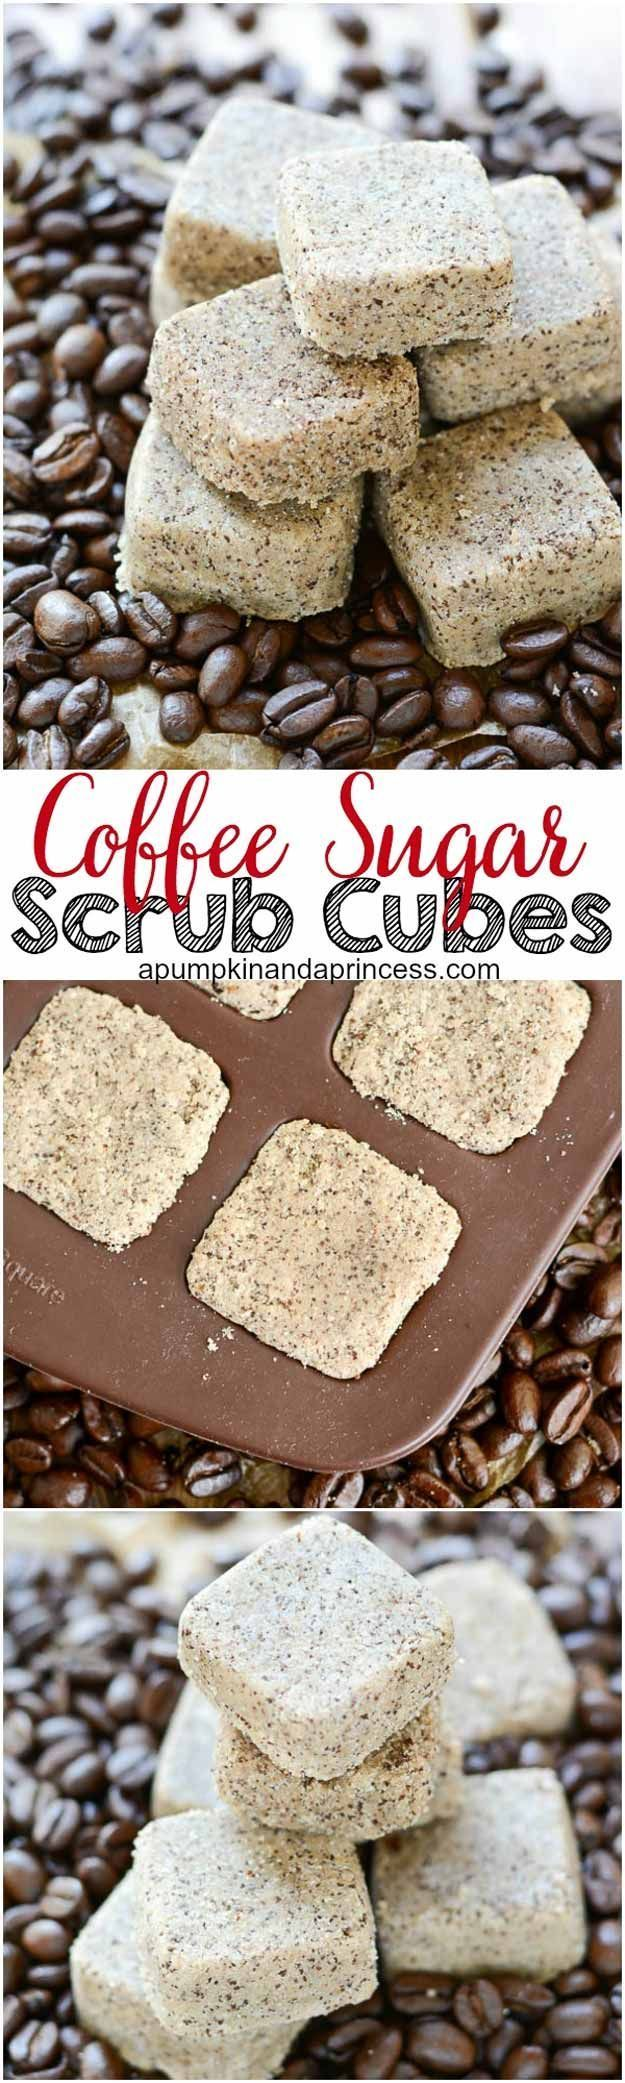 Easy Ways to Eliminate Cellulite - Coffee Sugar Scrub Cubes - Fast How Tos, Exercise Tips and Diet Tricks to Get Rid of Cellulite Fast - Strategies for How To Get Rid Of Stretch Marks in a Natural Way - Remedies for Thick Thighs and Tips for Healthy Eating - Look Great and Lose Weight With These Simple Effective Tricks - https://thegoddess.com/ways-to-eliminate-cellulite #EliminateCellulite